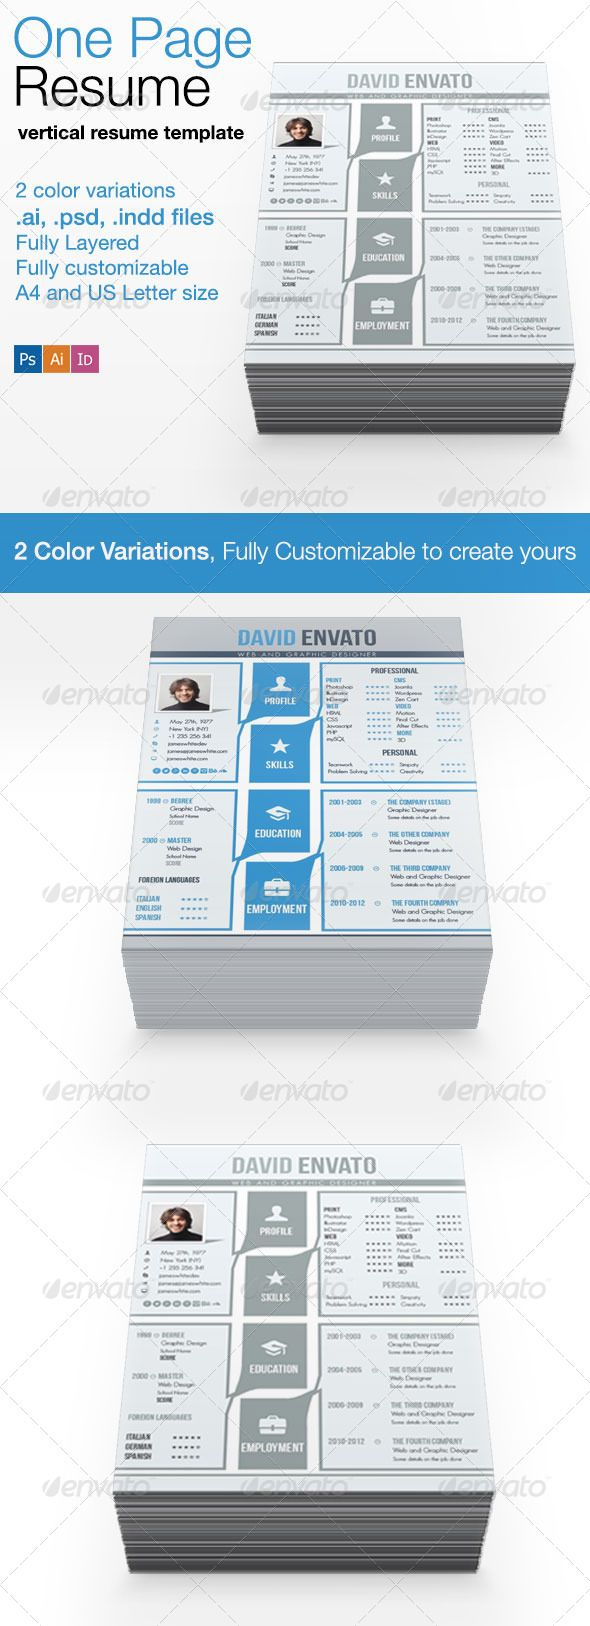 one page resume  graphicriver another great way to stand